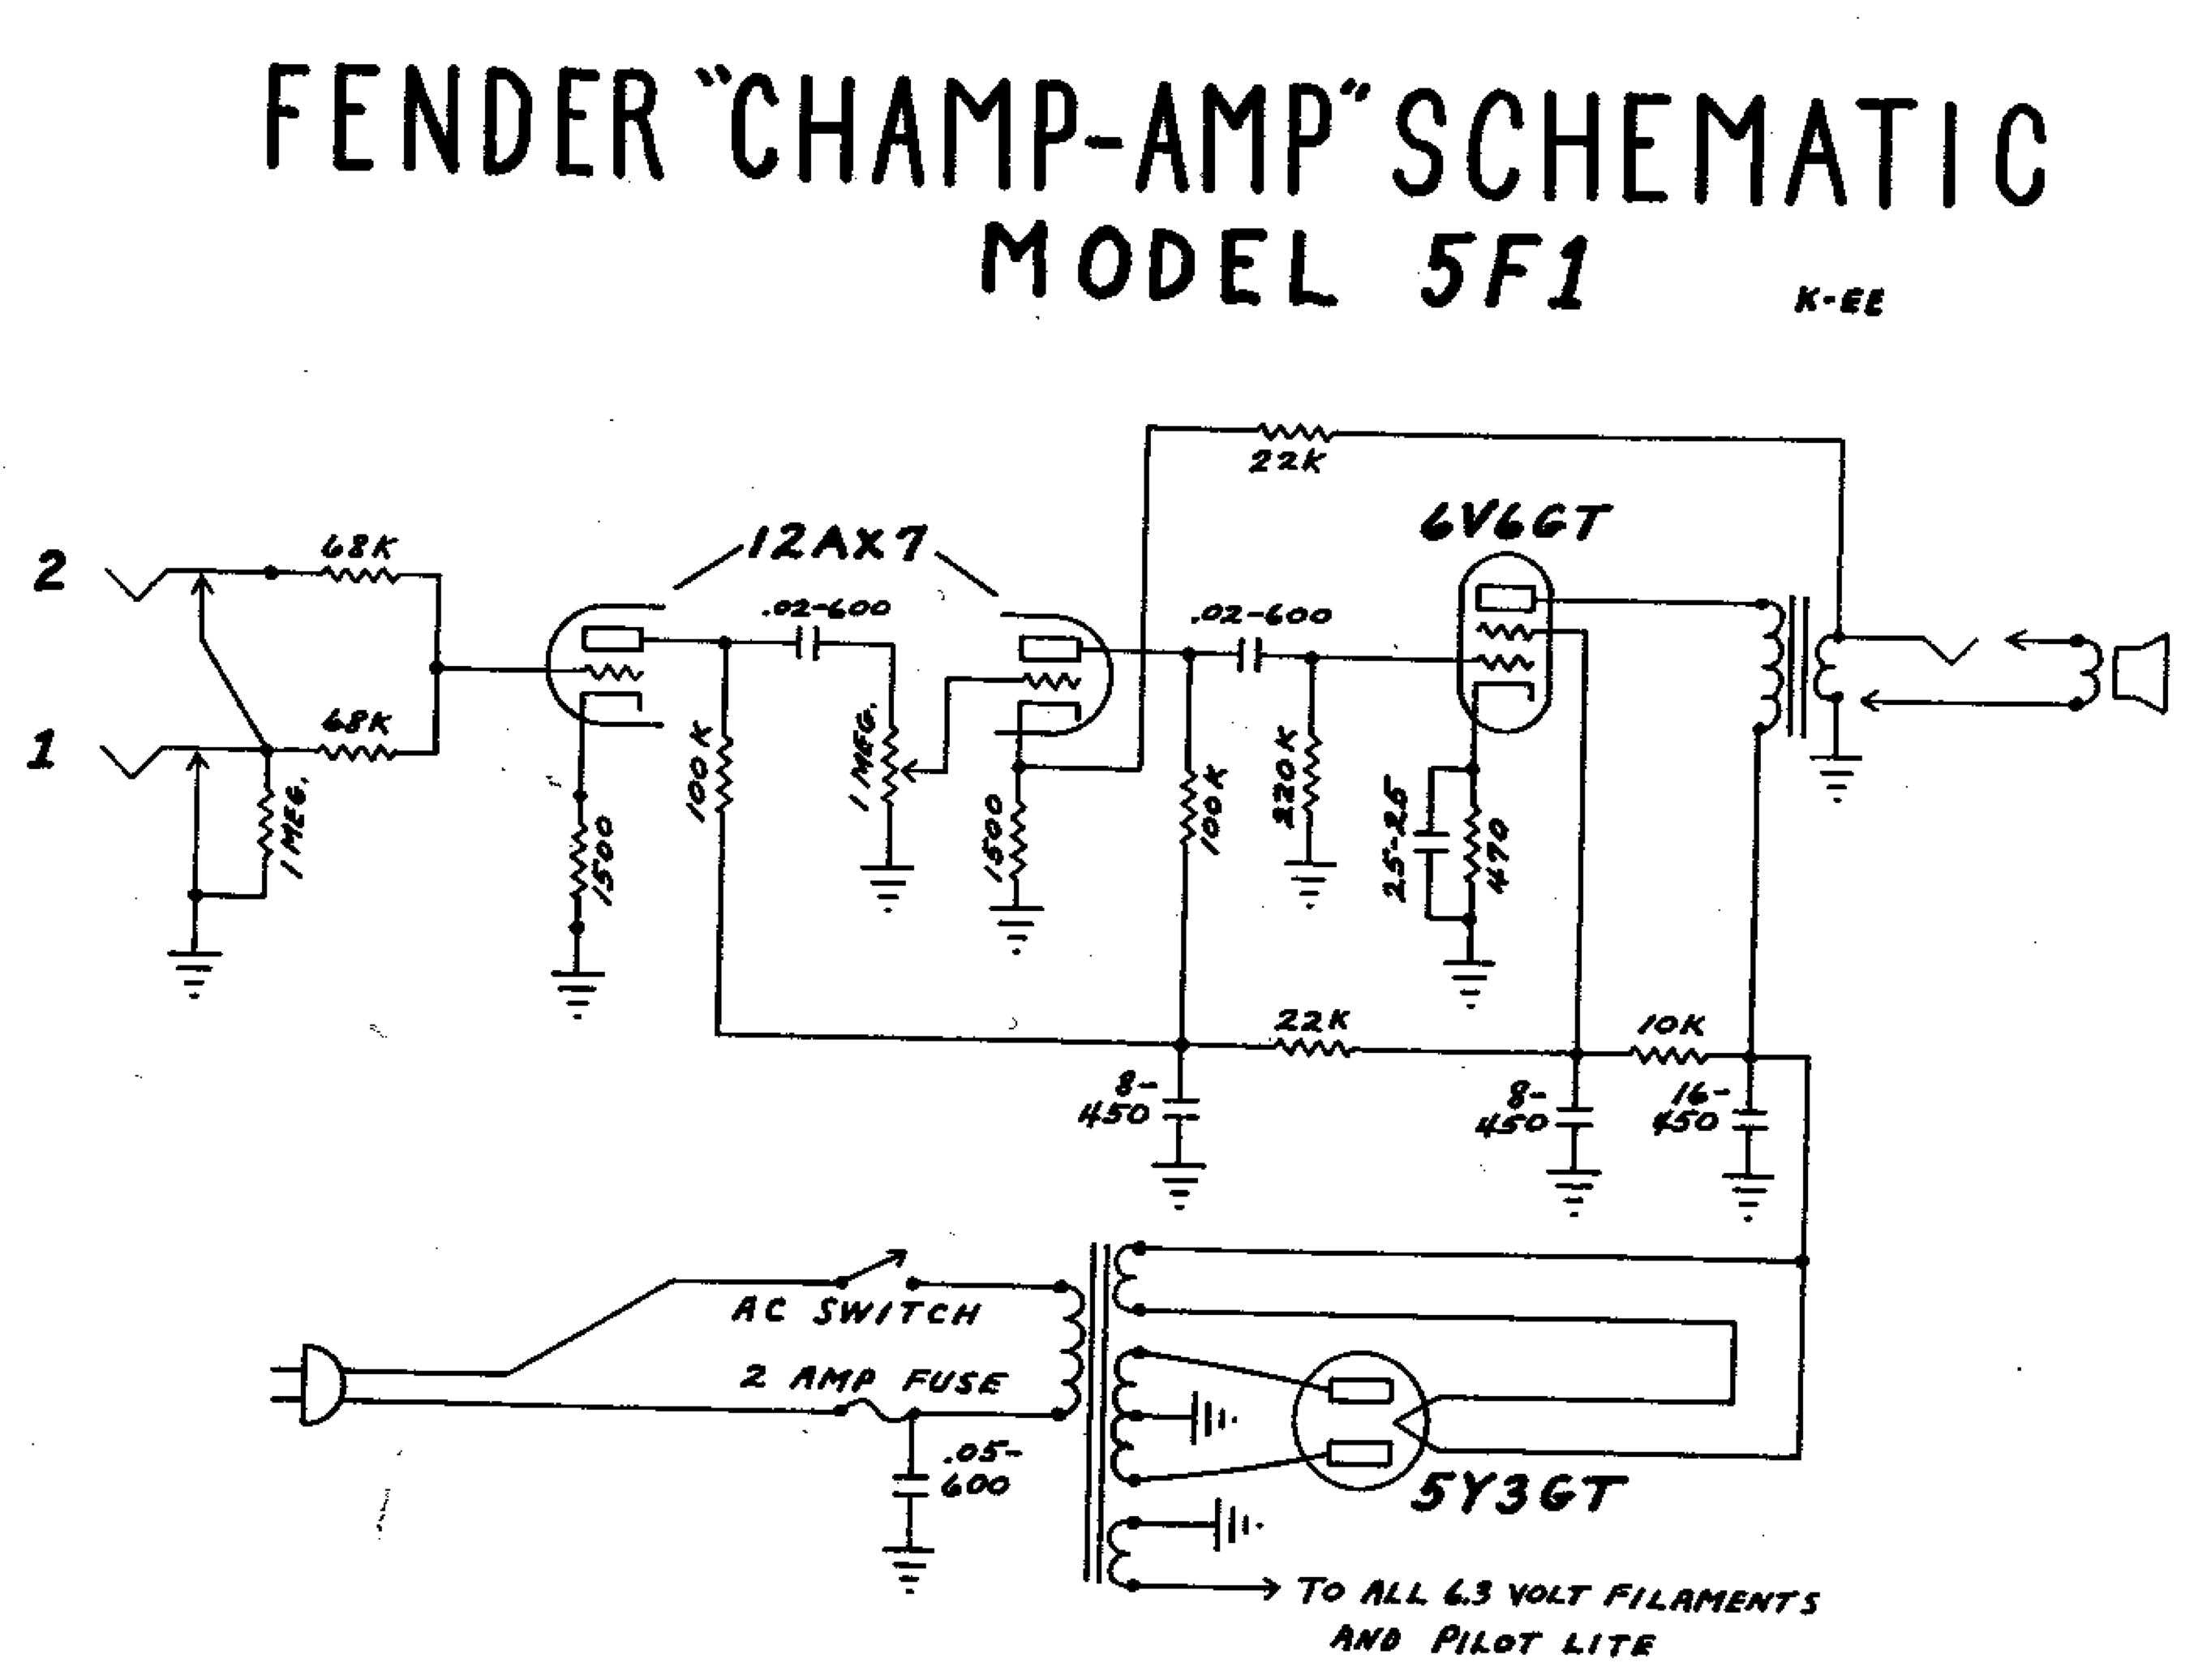 Fender Mustang Wiring Schematic | Wiring Library - Fender Mustang Wiring Diagram